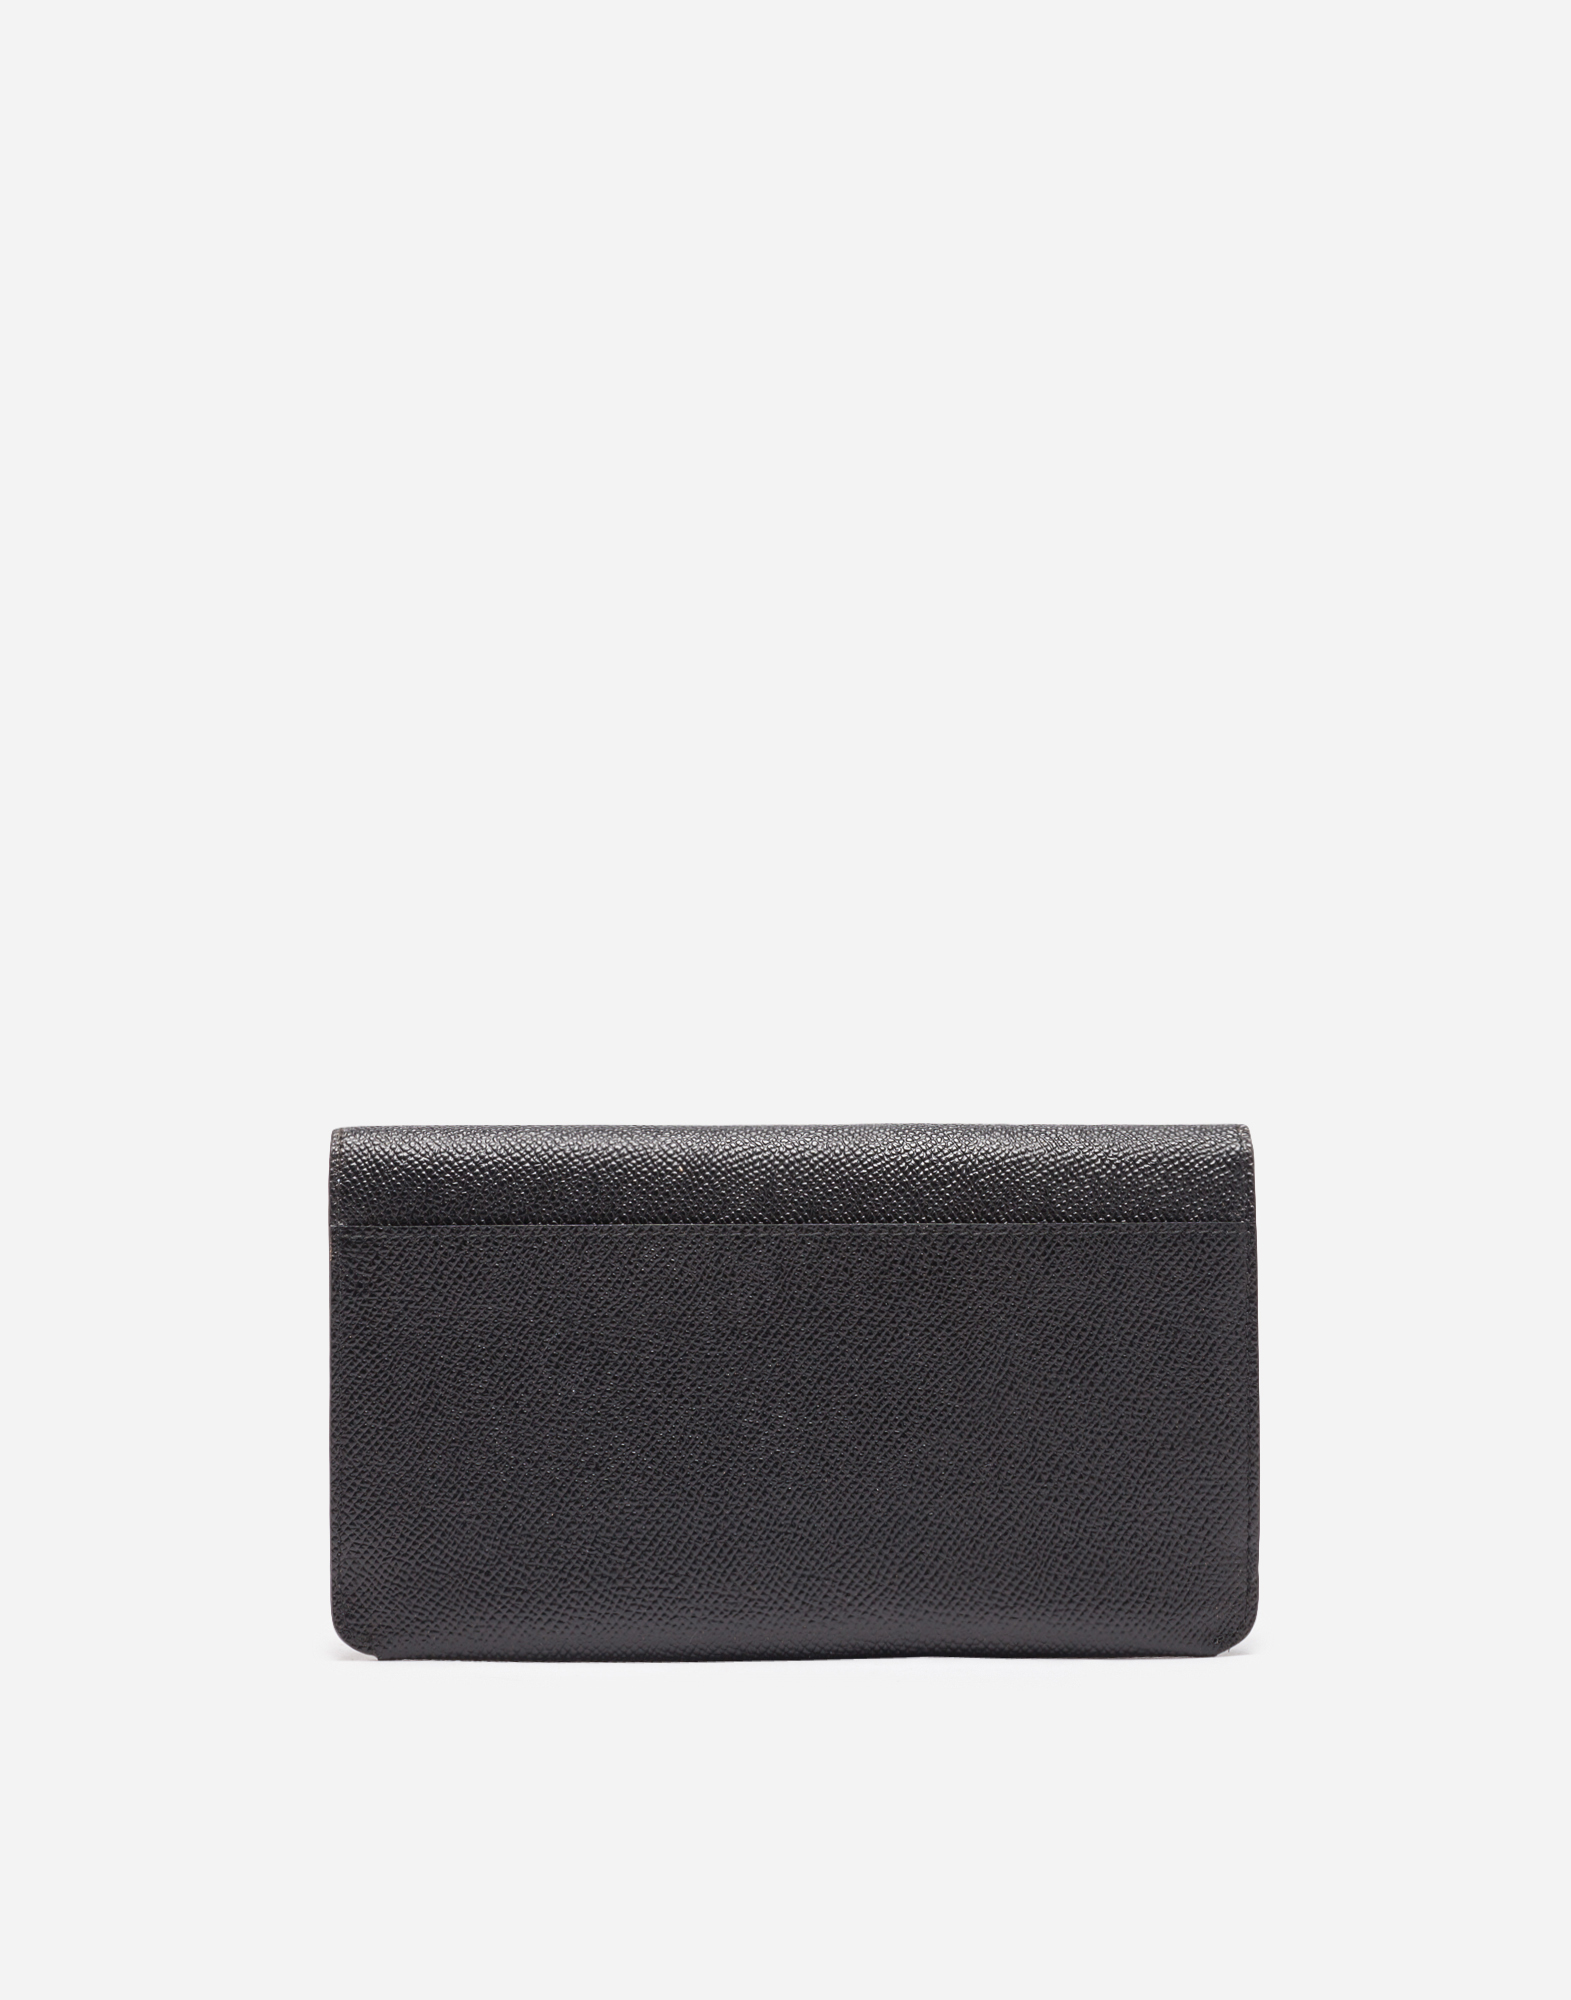 LEATHER MULTI-FUNCTIONAL WALLET